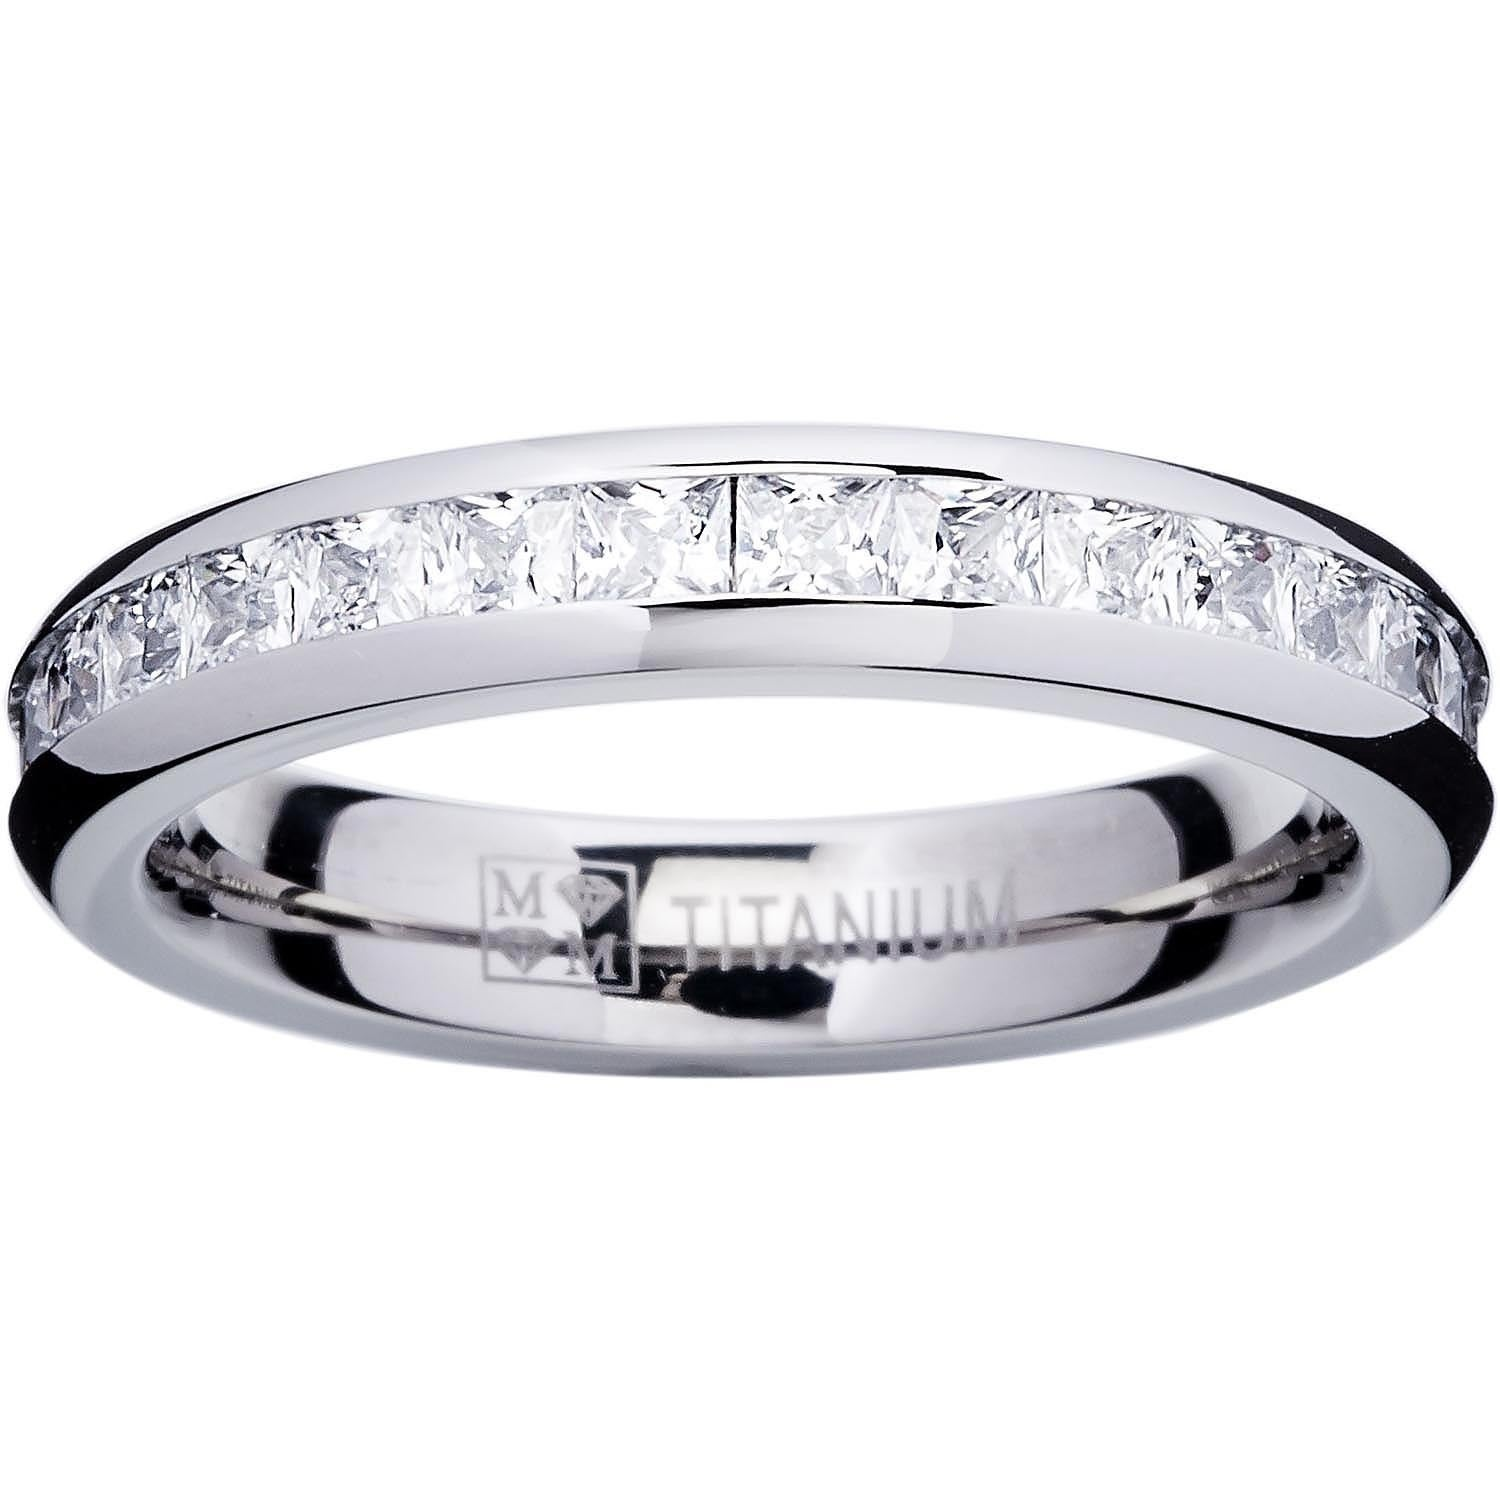 wide eternity band silver womens com s zirconia products cubic women acbe sterling cz ring jewelryland bands